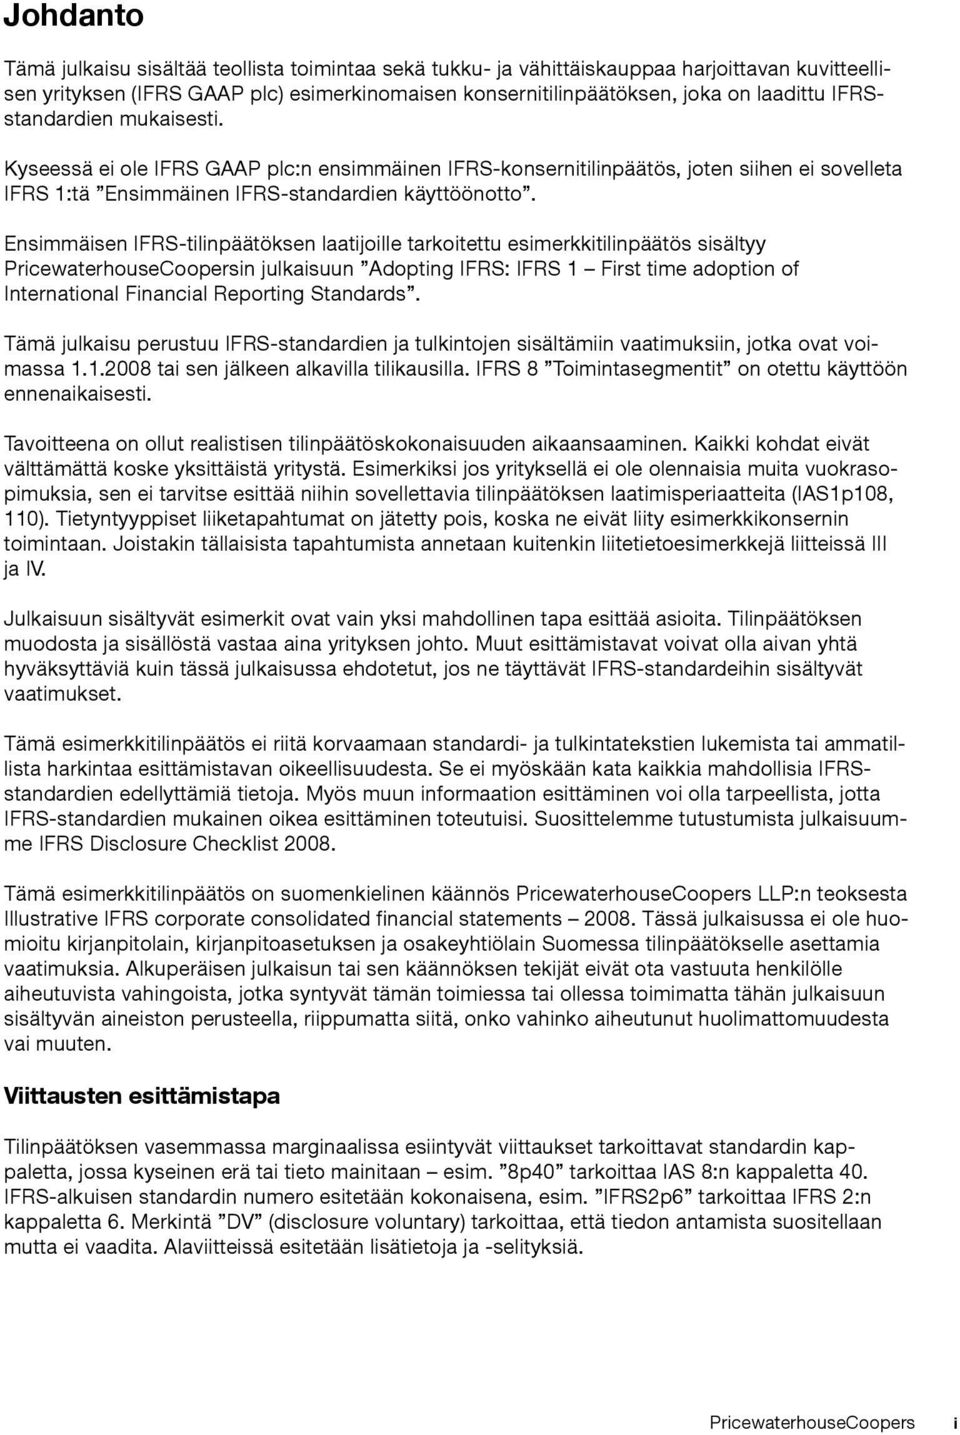 Ensimmäisen IFRS-tilinpäätöksen laatijoille tarkoitettu esimerkkitilinpäätös sisältyy PricewaterhouseCoopersin julkaisuun Adopting IFRS: IFRS 1 First time adoption of International Financial